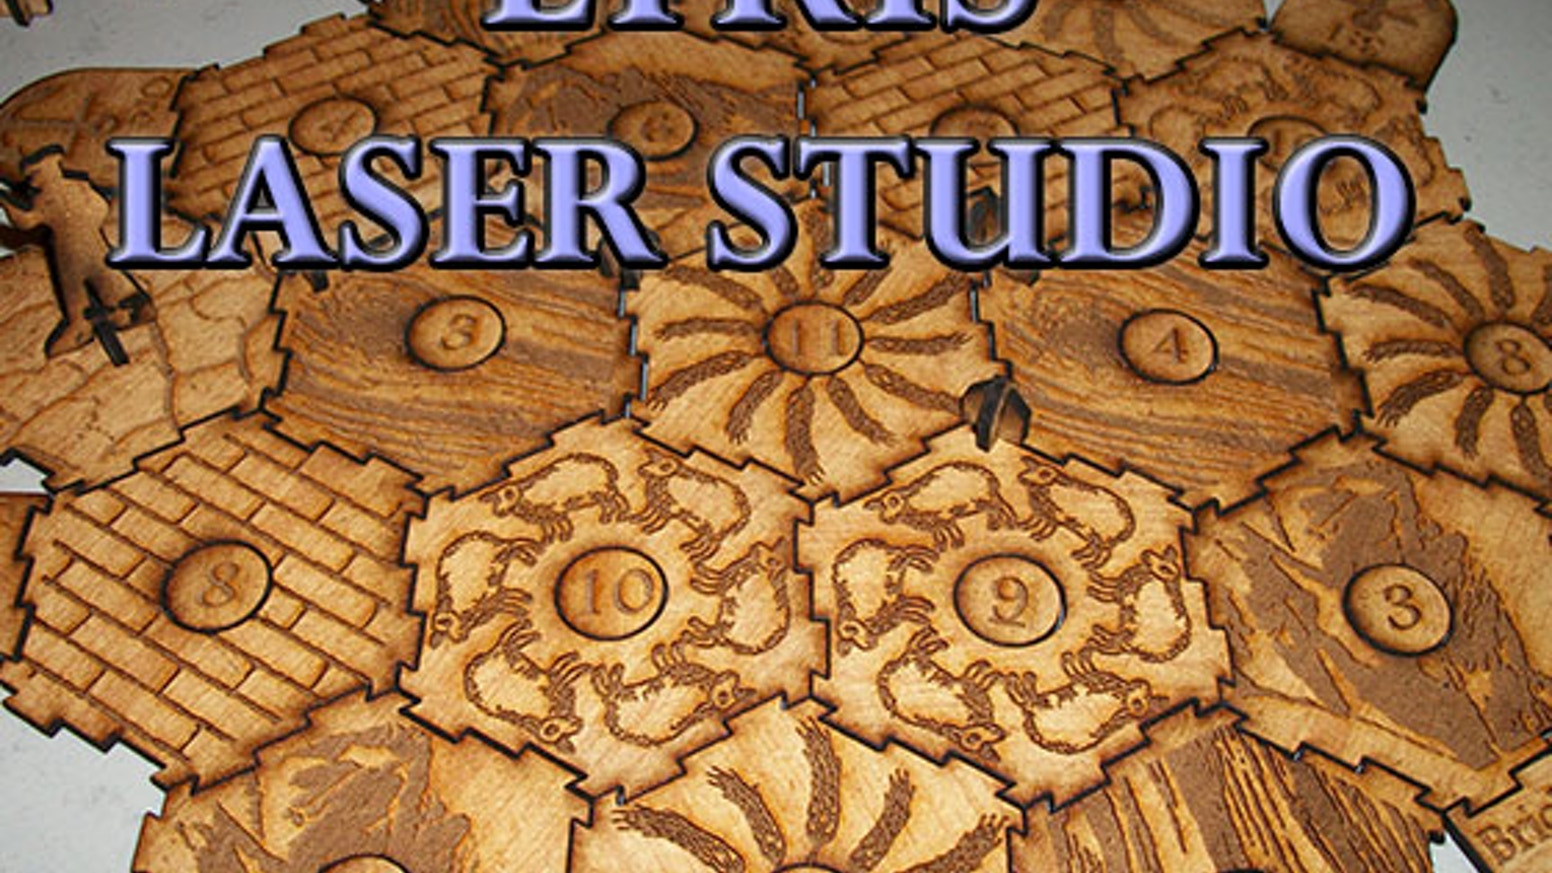 Thanks to Kickstarter, we were able to purchase the laser-cutting equipment we needed to start in 2012. Since then, Lyris Laser Studio has been growing, visiting more conventions, and producing items for many other Kickstarter projects.